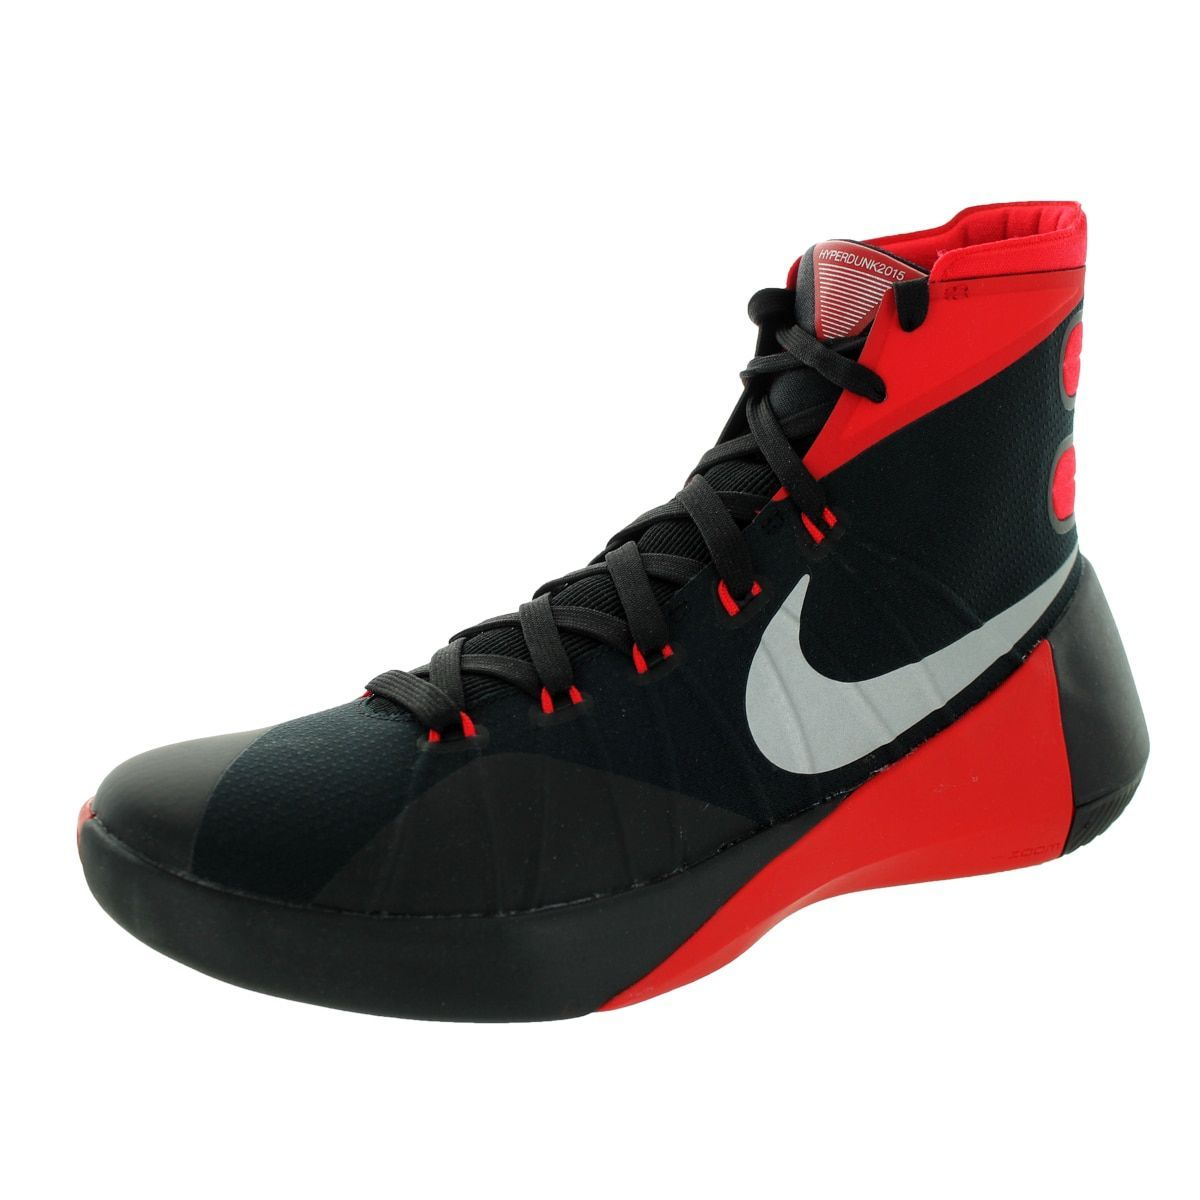 30df2a14a74 ... promo code for nike mens hyperdunk 2015 mlc silver university red  basketball shoe 453ed 63b3d